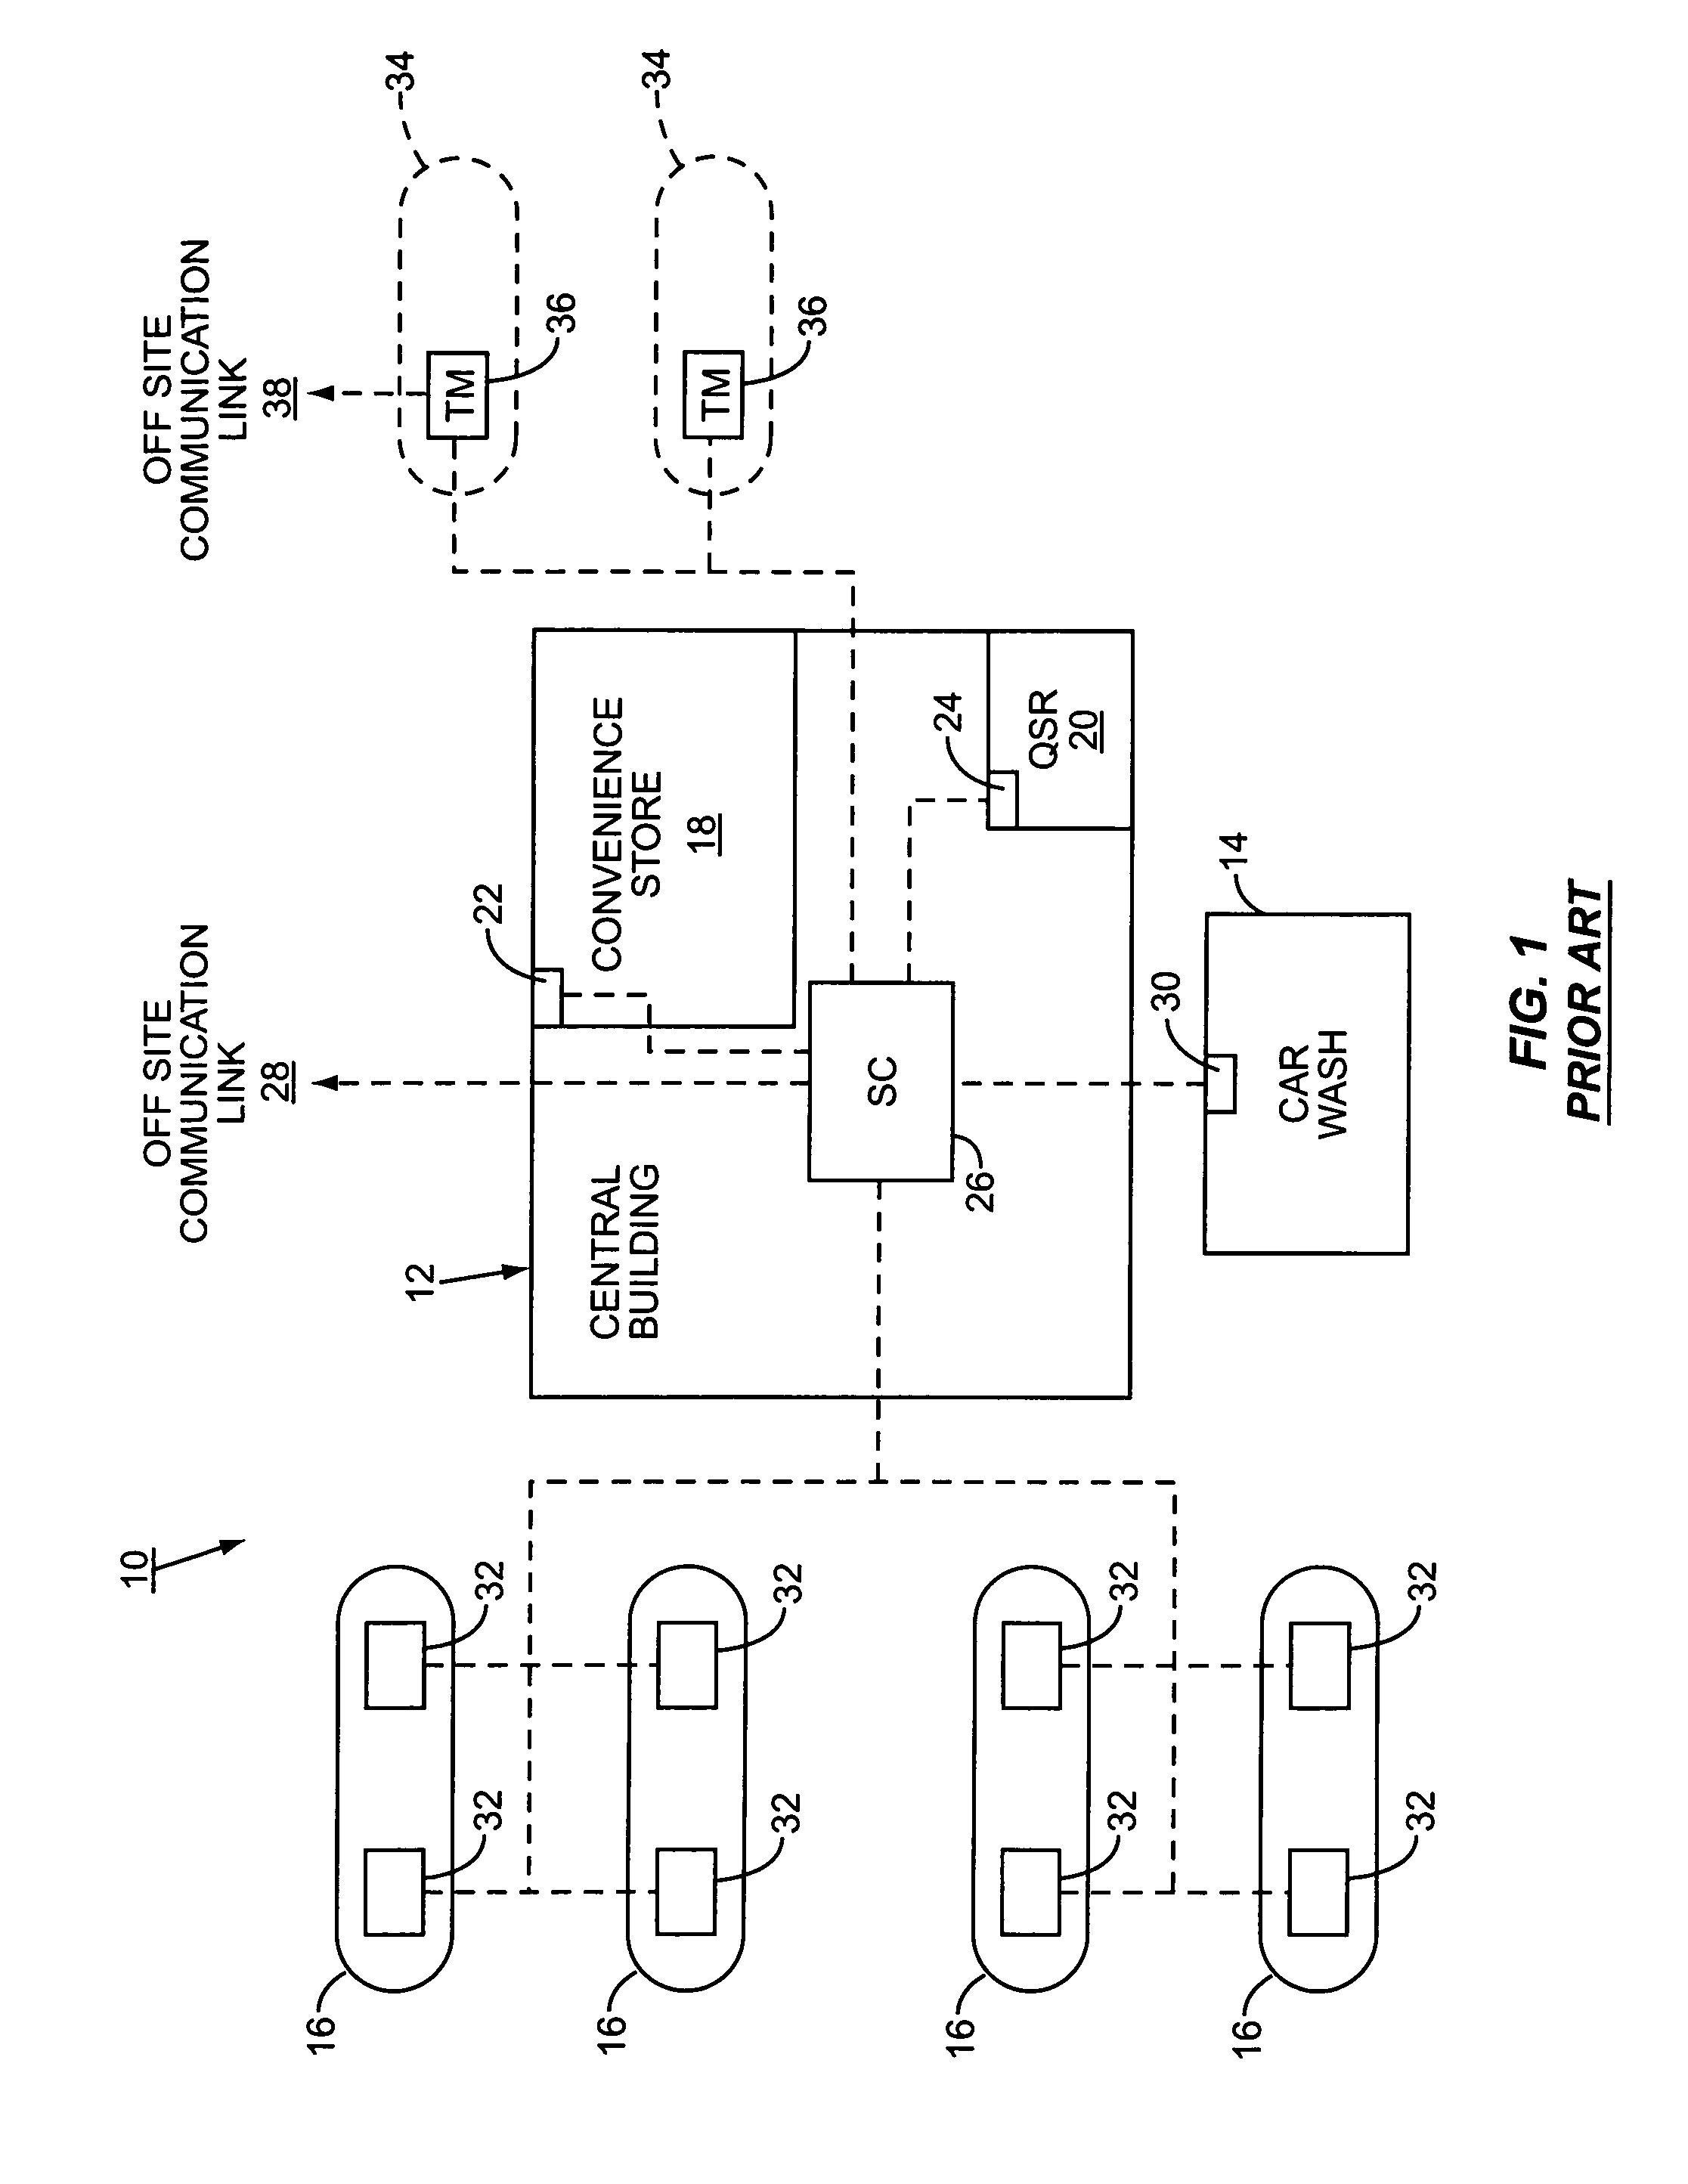 patent us7455194 - service station leak detection and recovery system